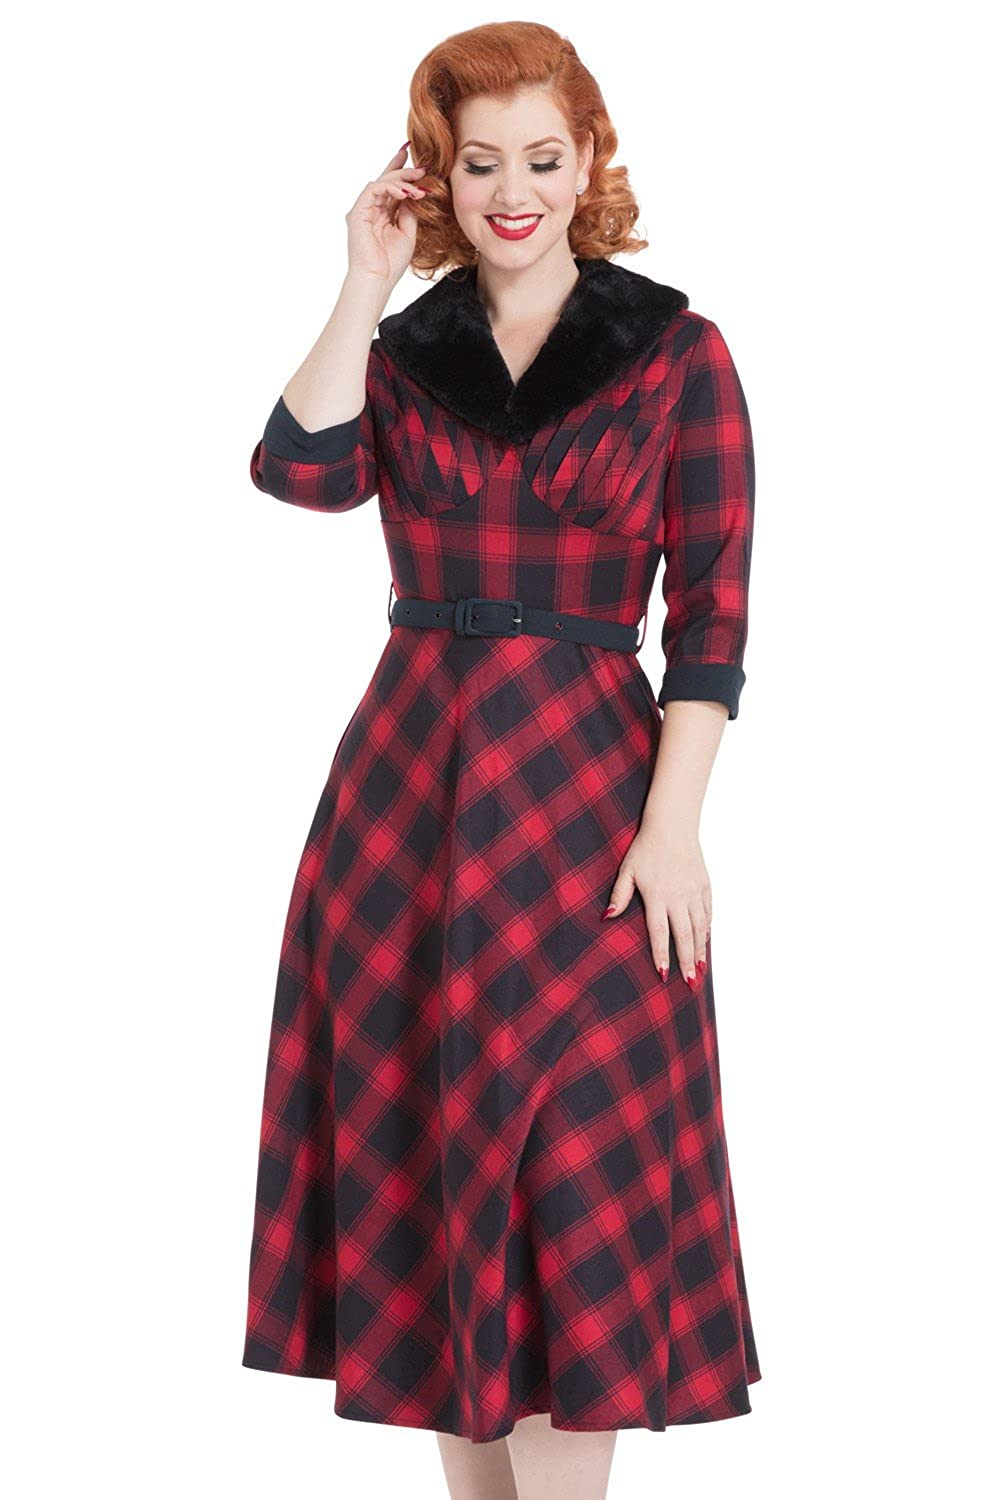 1950s Housewife Dress | 50s Day Dresses Voodoo Vixen Bettie Plaid Check Vintage Retro 50s Faux Fur Evening Party Dress $69.99 AT vintagedancer.com